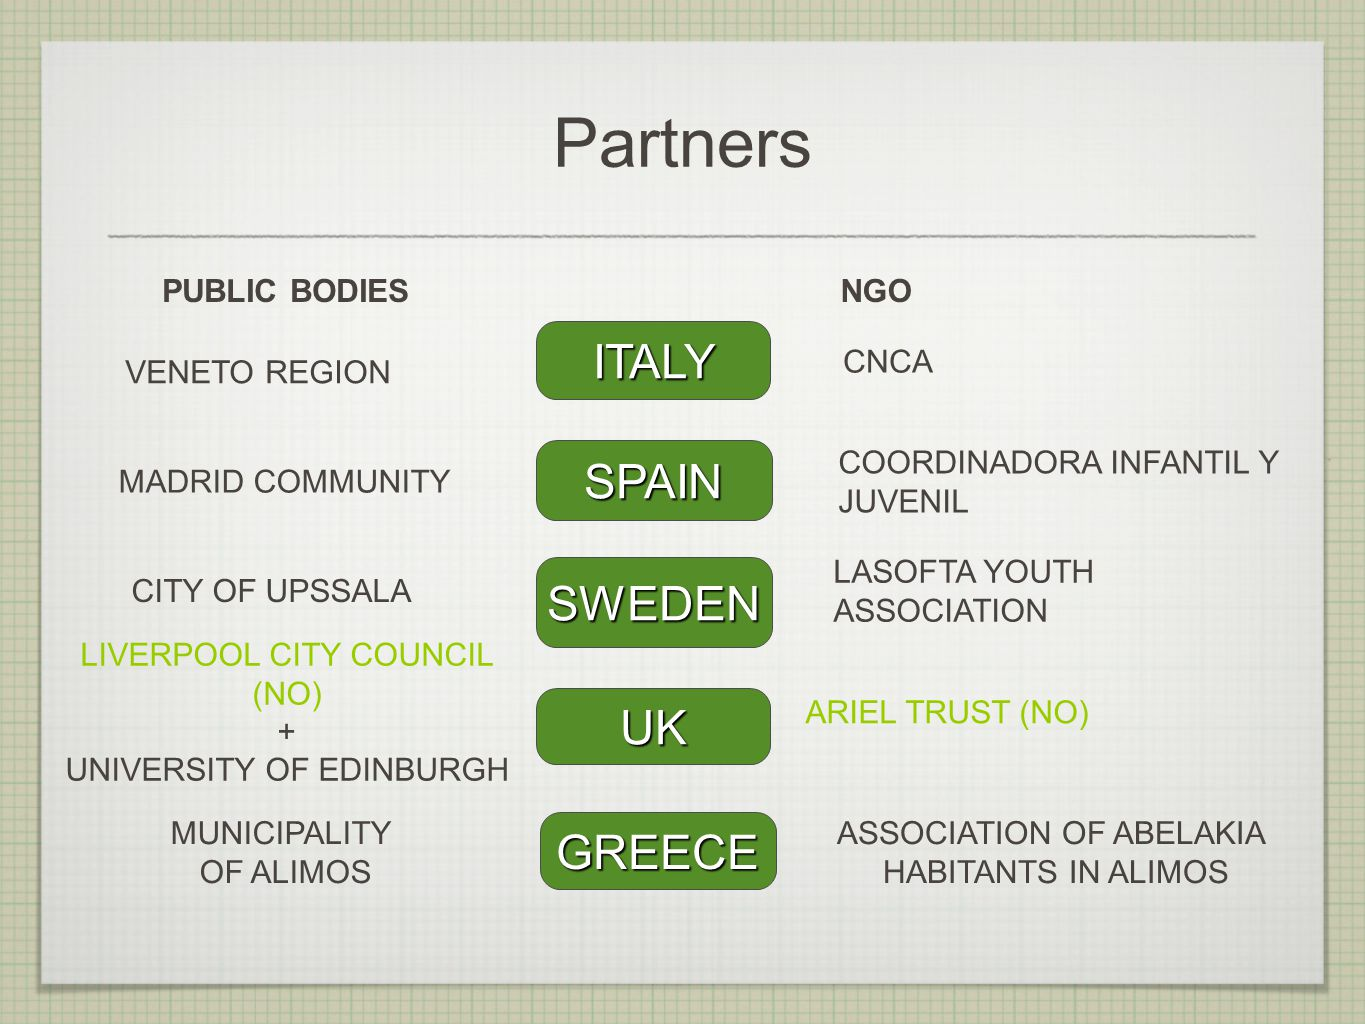 Partners PUBLIC BODIESNGO ITALY GREECE UK SPAIN VENETO REGION ARIEL TRUST (NO) COORDINADORA INFANTIL Y JUVENIL MADRID COMMUNITY CITY OF UPSSALA CNCA SWEDEN LASOFTA YOUTH ASSOCIATION LIVERPOOL CITY COUNCIL (NO) + UNIVERSITY OF EDINBURGH MUNICIPALITY OF ALIMOS ASSOCIATION OF ABELAKIA HABITANTS IN ALIMOS